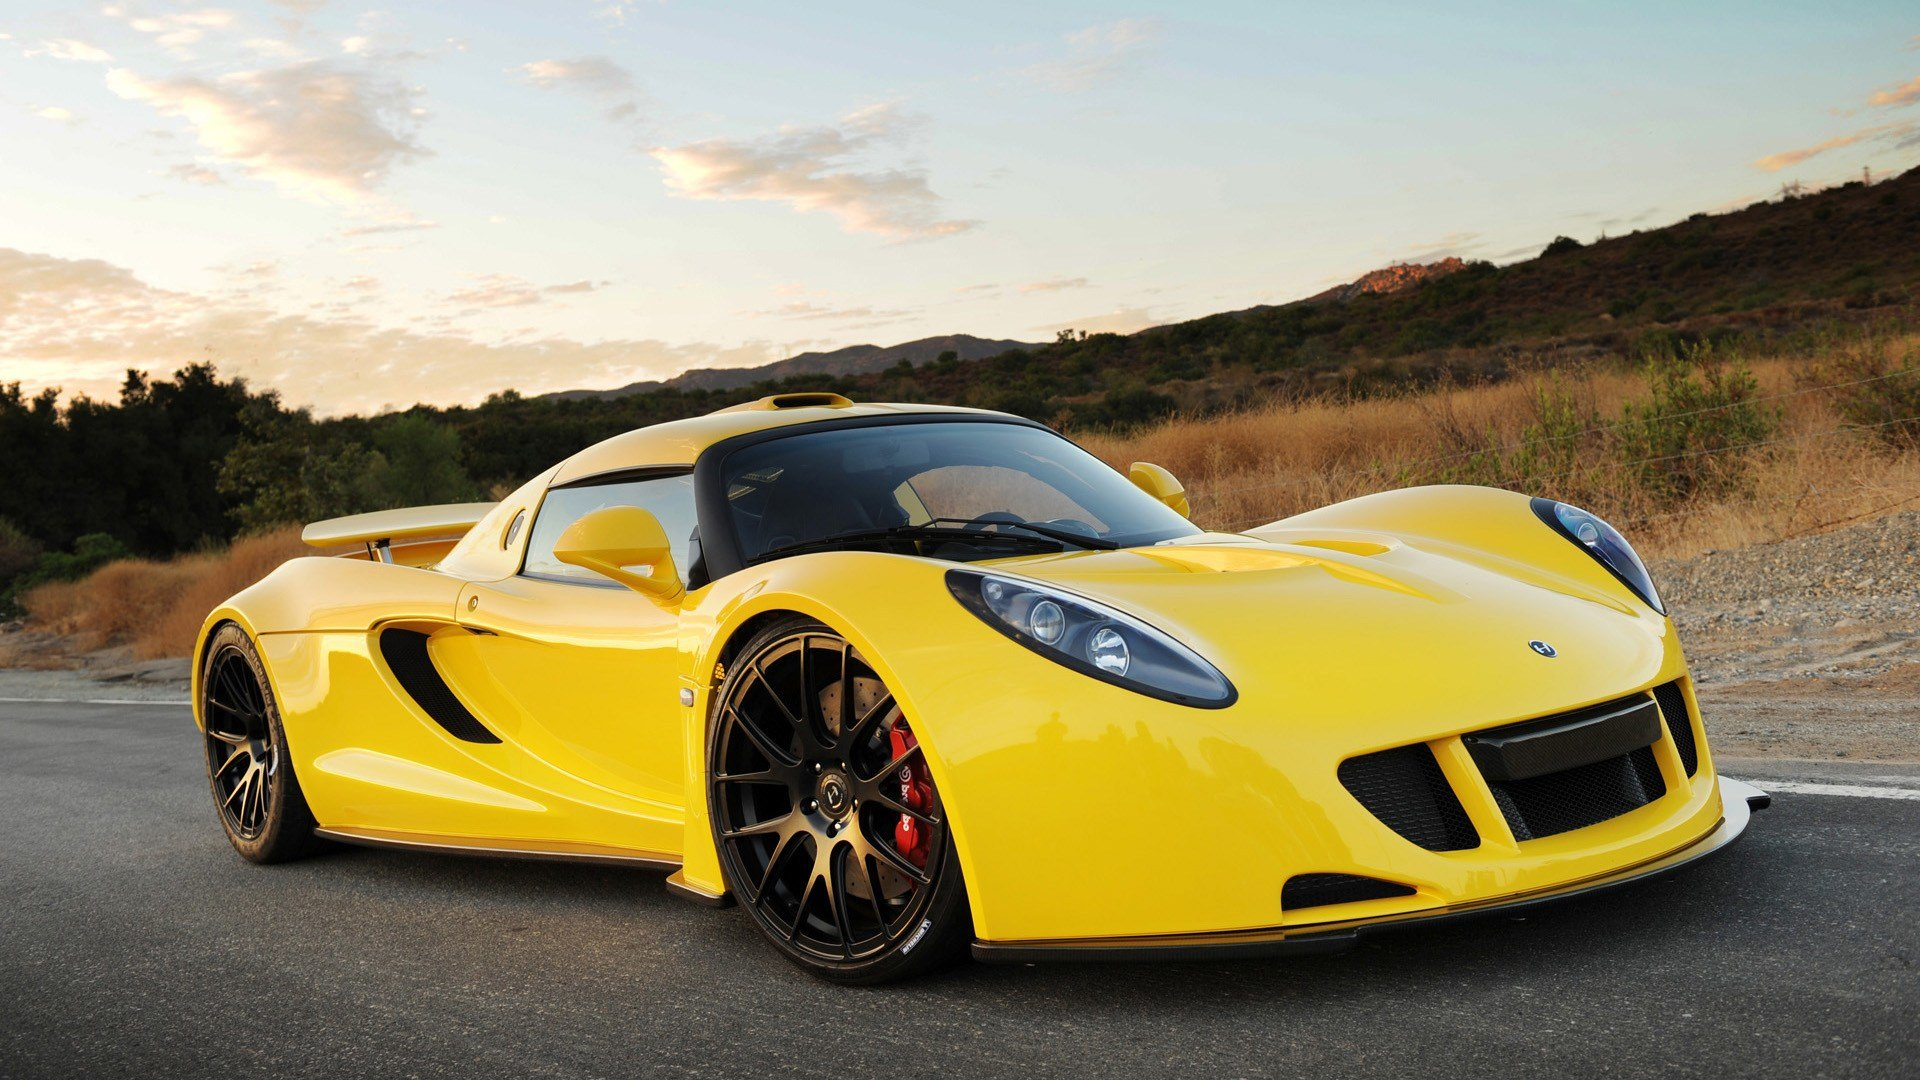 Latest 2012 Hennessey Venom Gt Wallpapers Hd Images Wsupercars Free Download